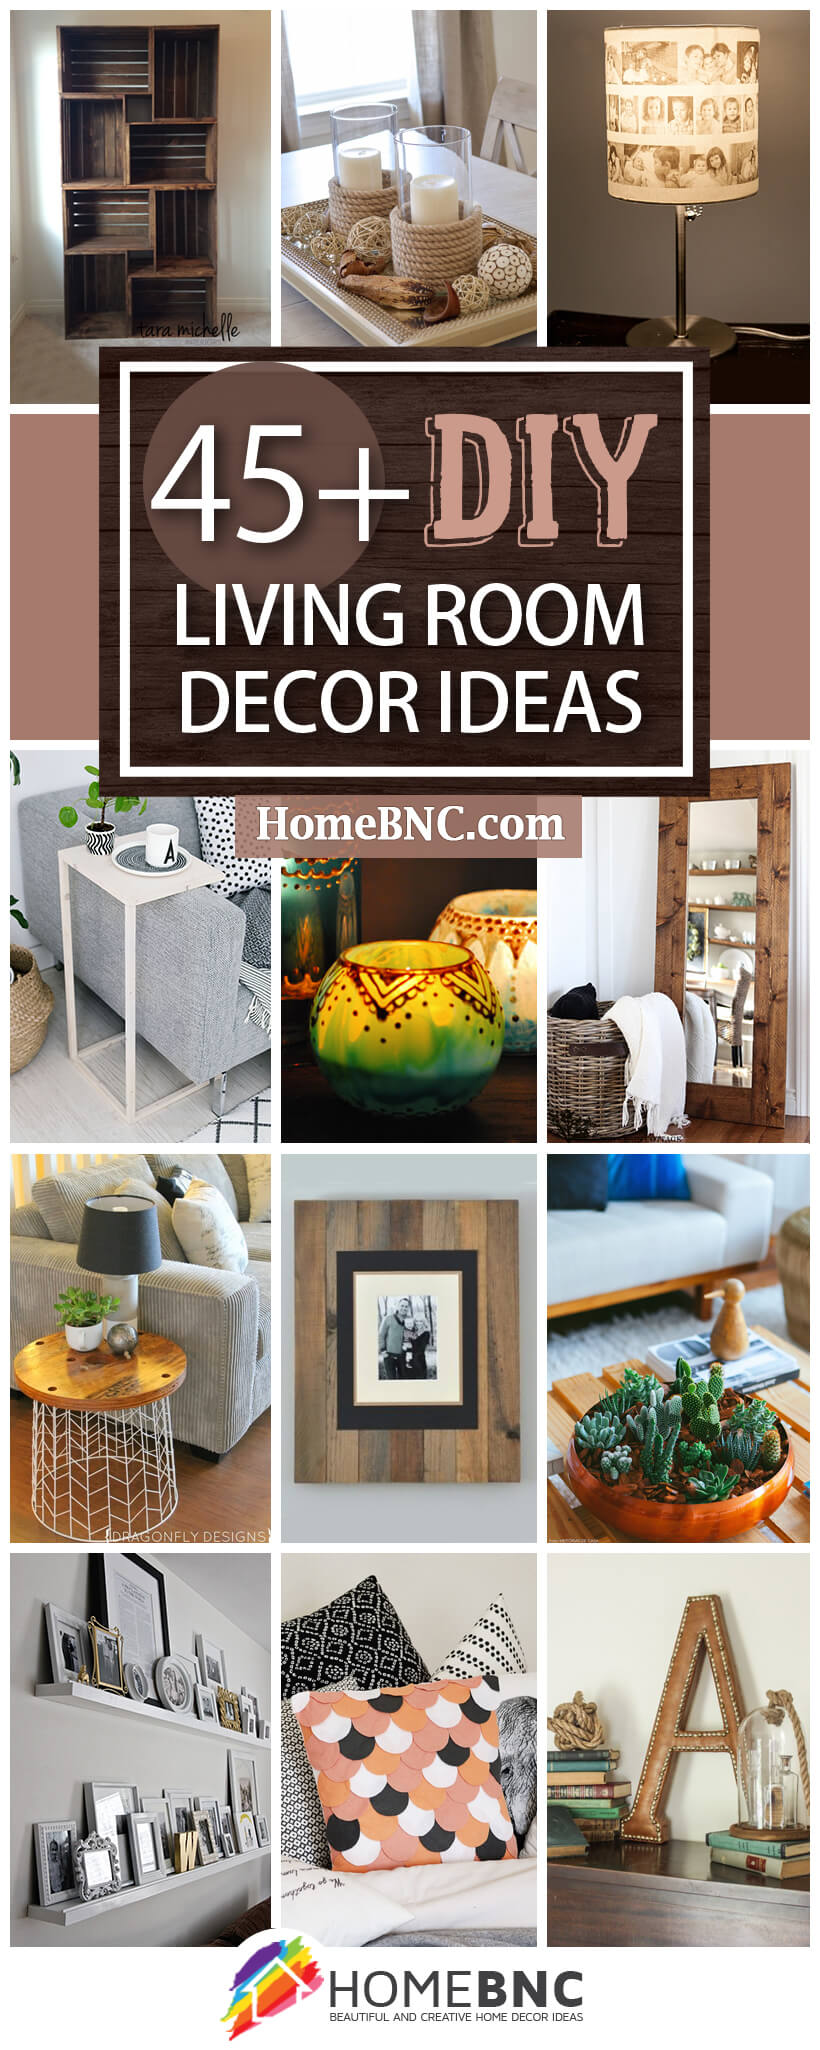 45+ Best DIY Living Room Decorating Ideas and Designs for 2019